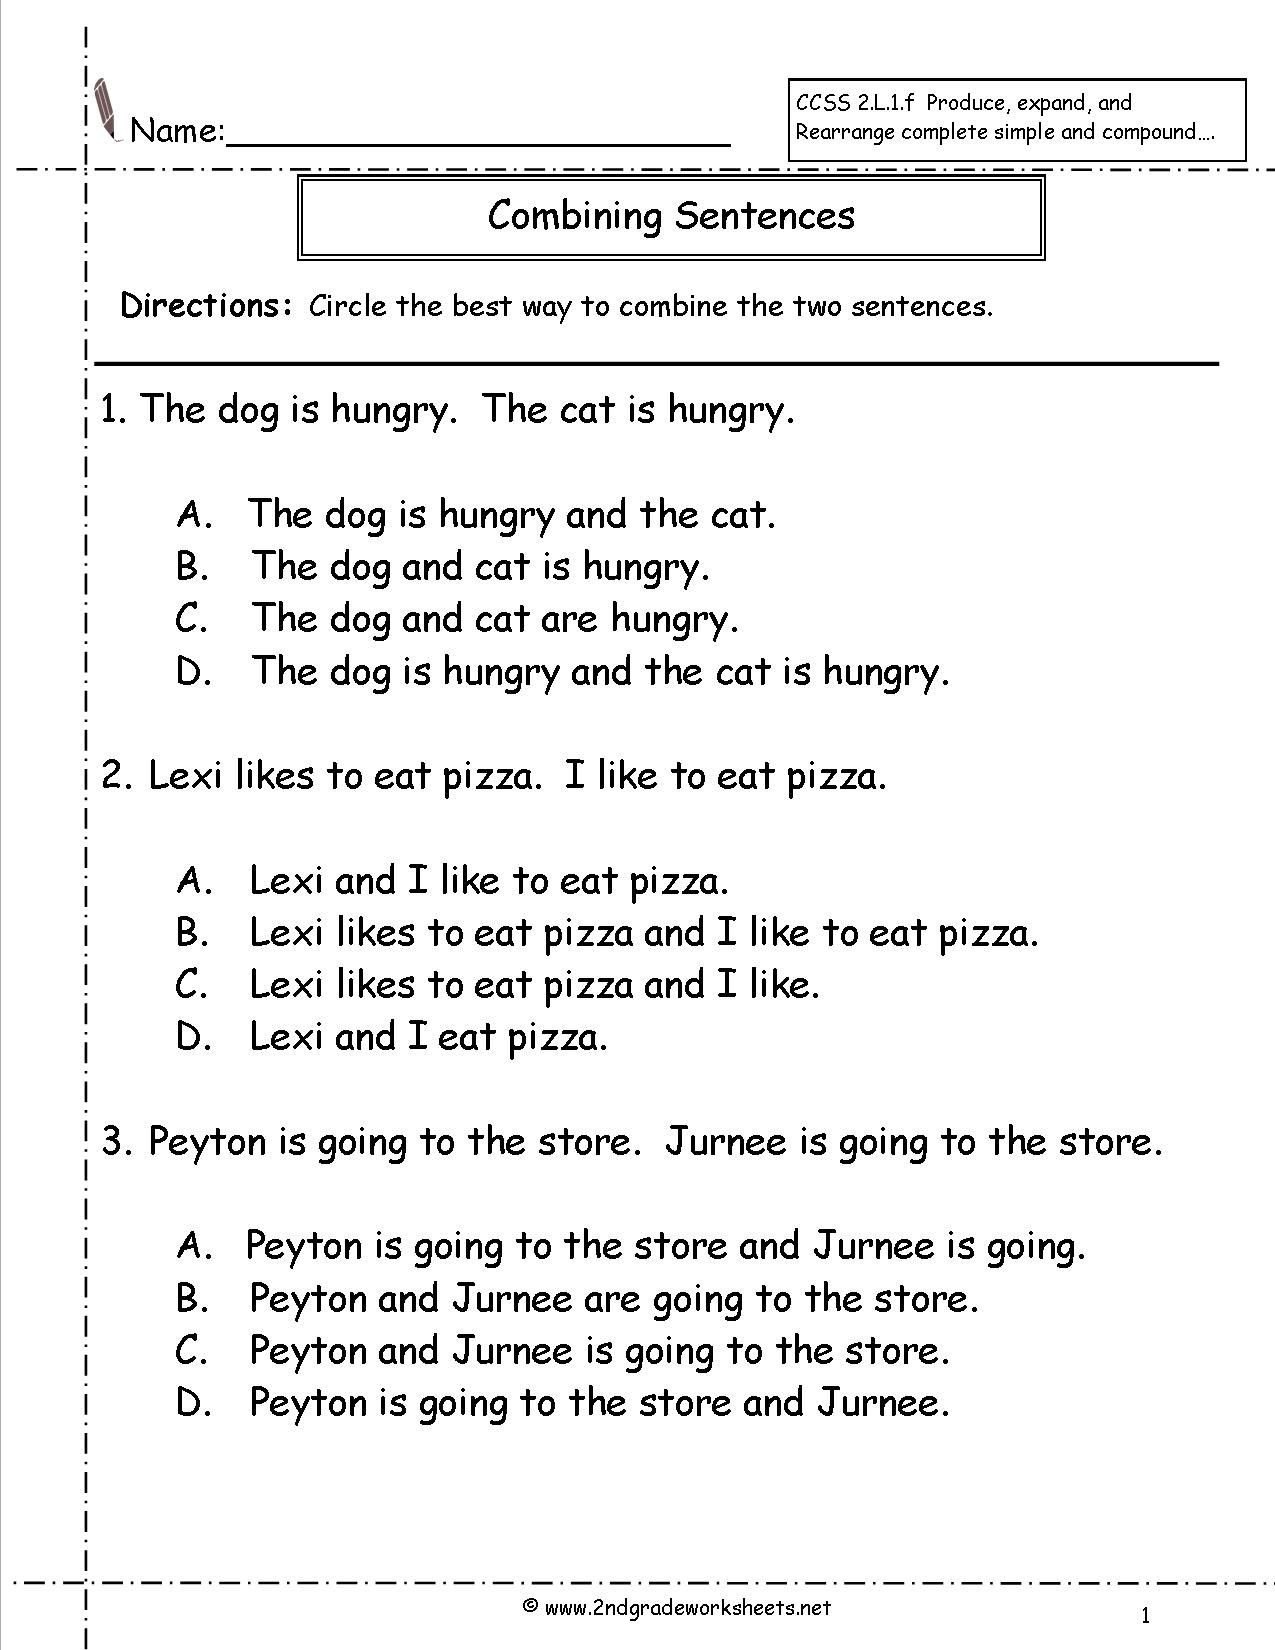 bining sentences worksheet